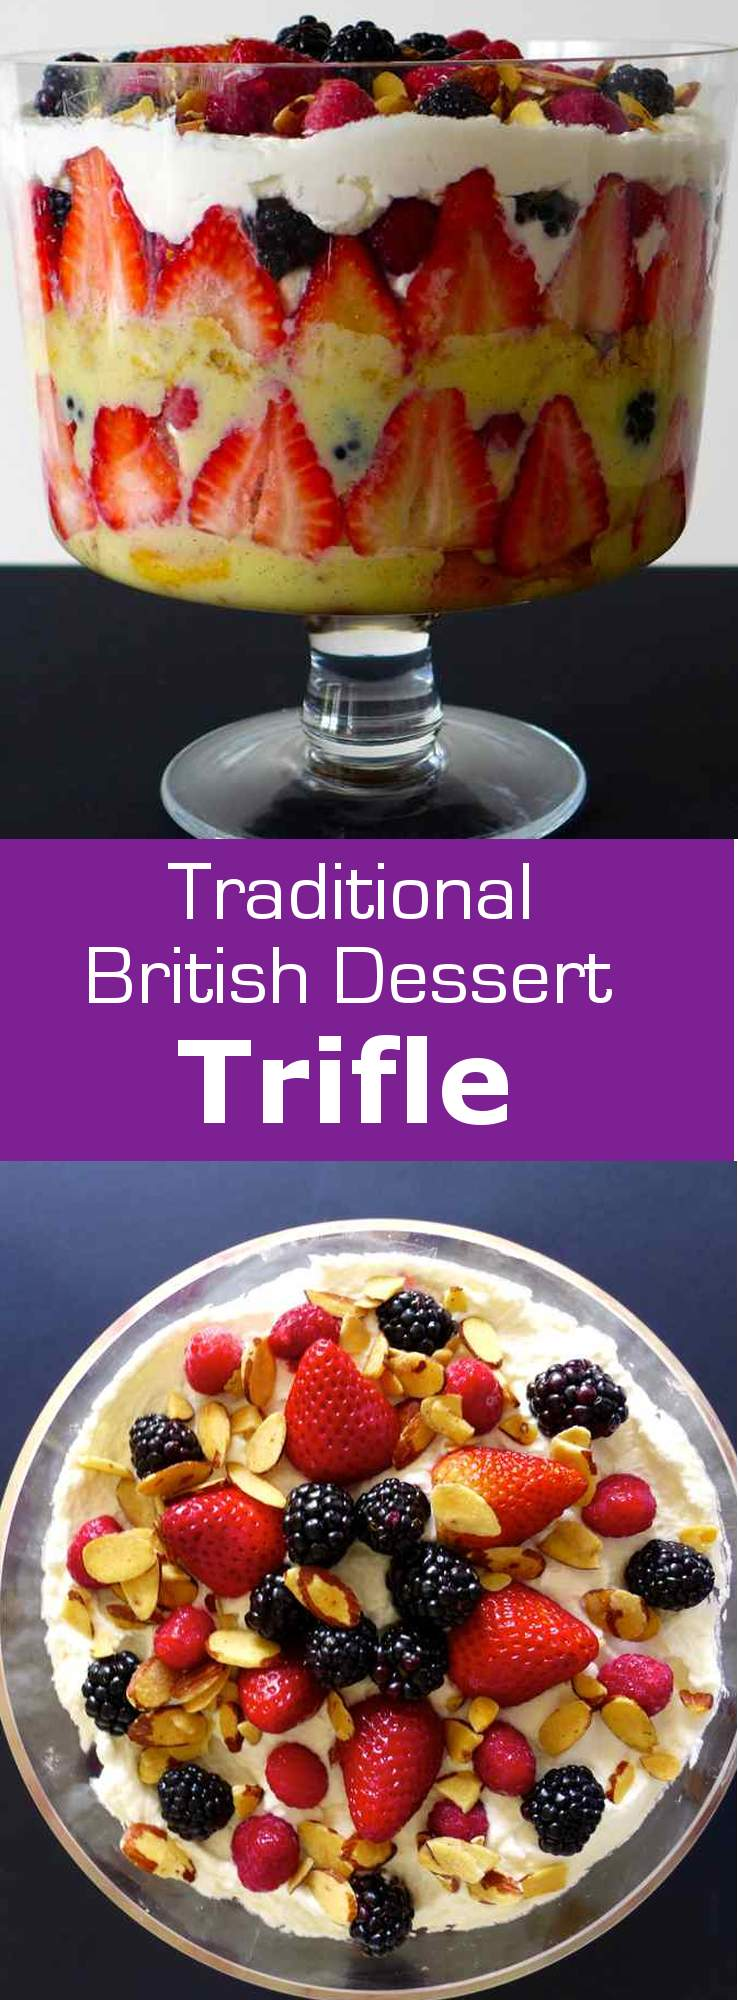 Trifle - Authentic English Recipe | 196 flavors